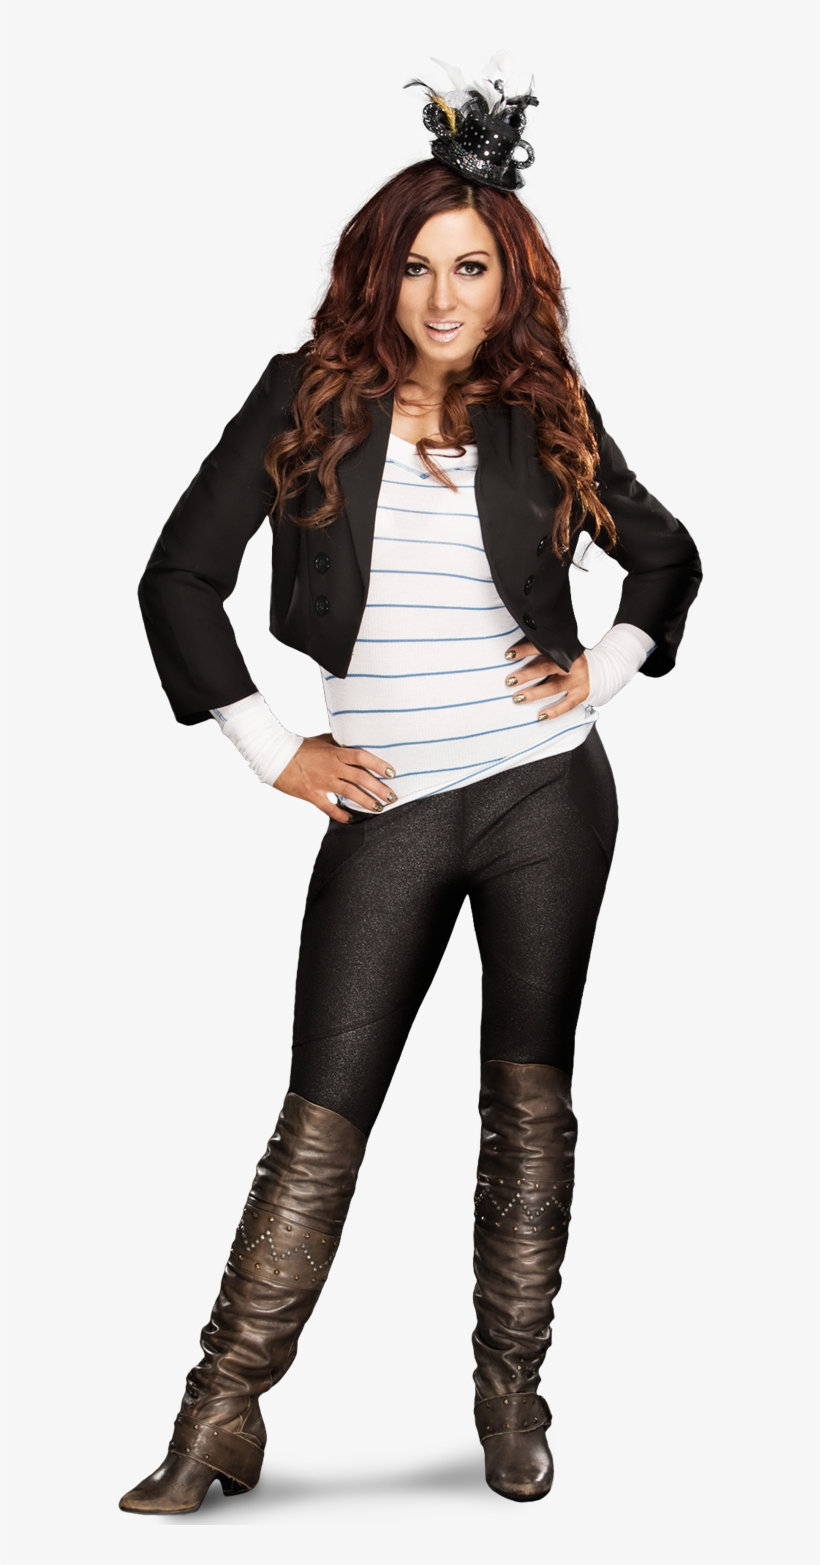 Carmella Is Trying Really Hard To Read Something Far - Becky Lynch Wwe Profile, transparent png #475997